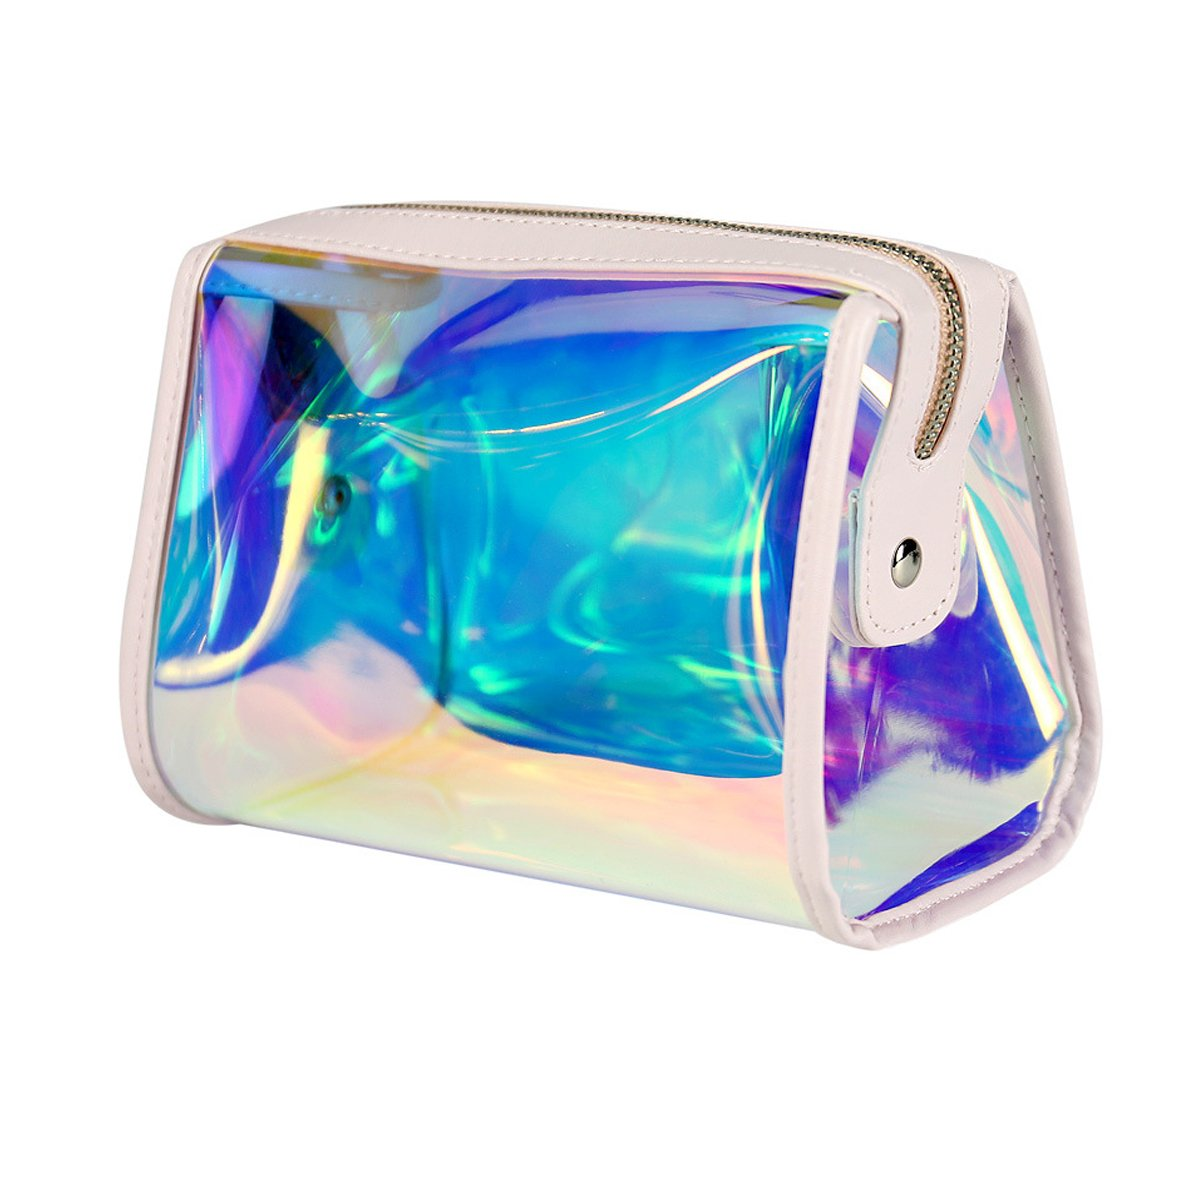 Andear Women's PVC Clear Hologram Transparent Clutch MakeUp Purse Bag for Girls by Andear (Image #1)